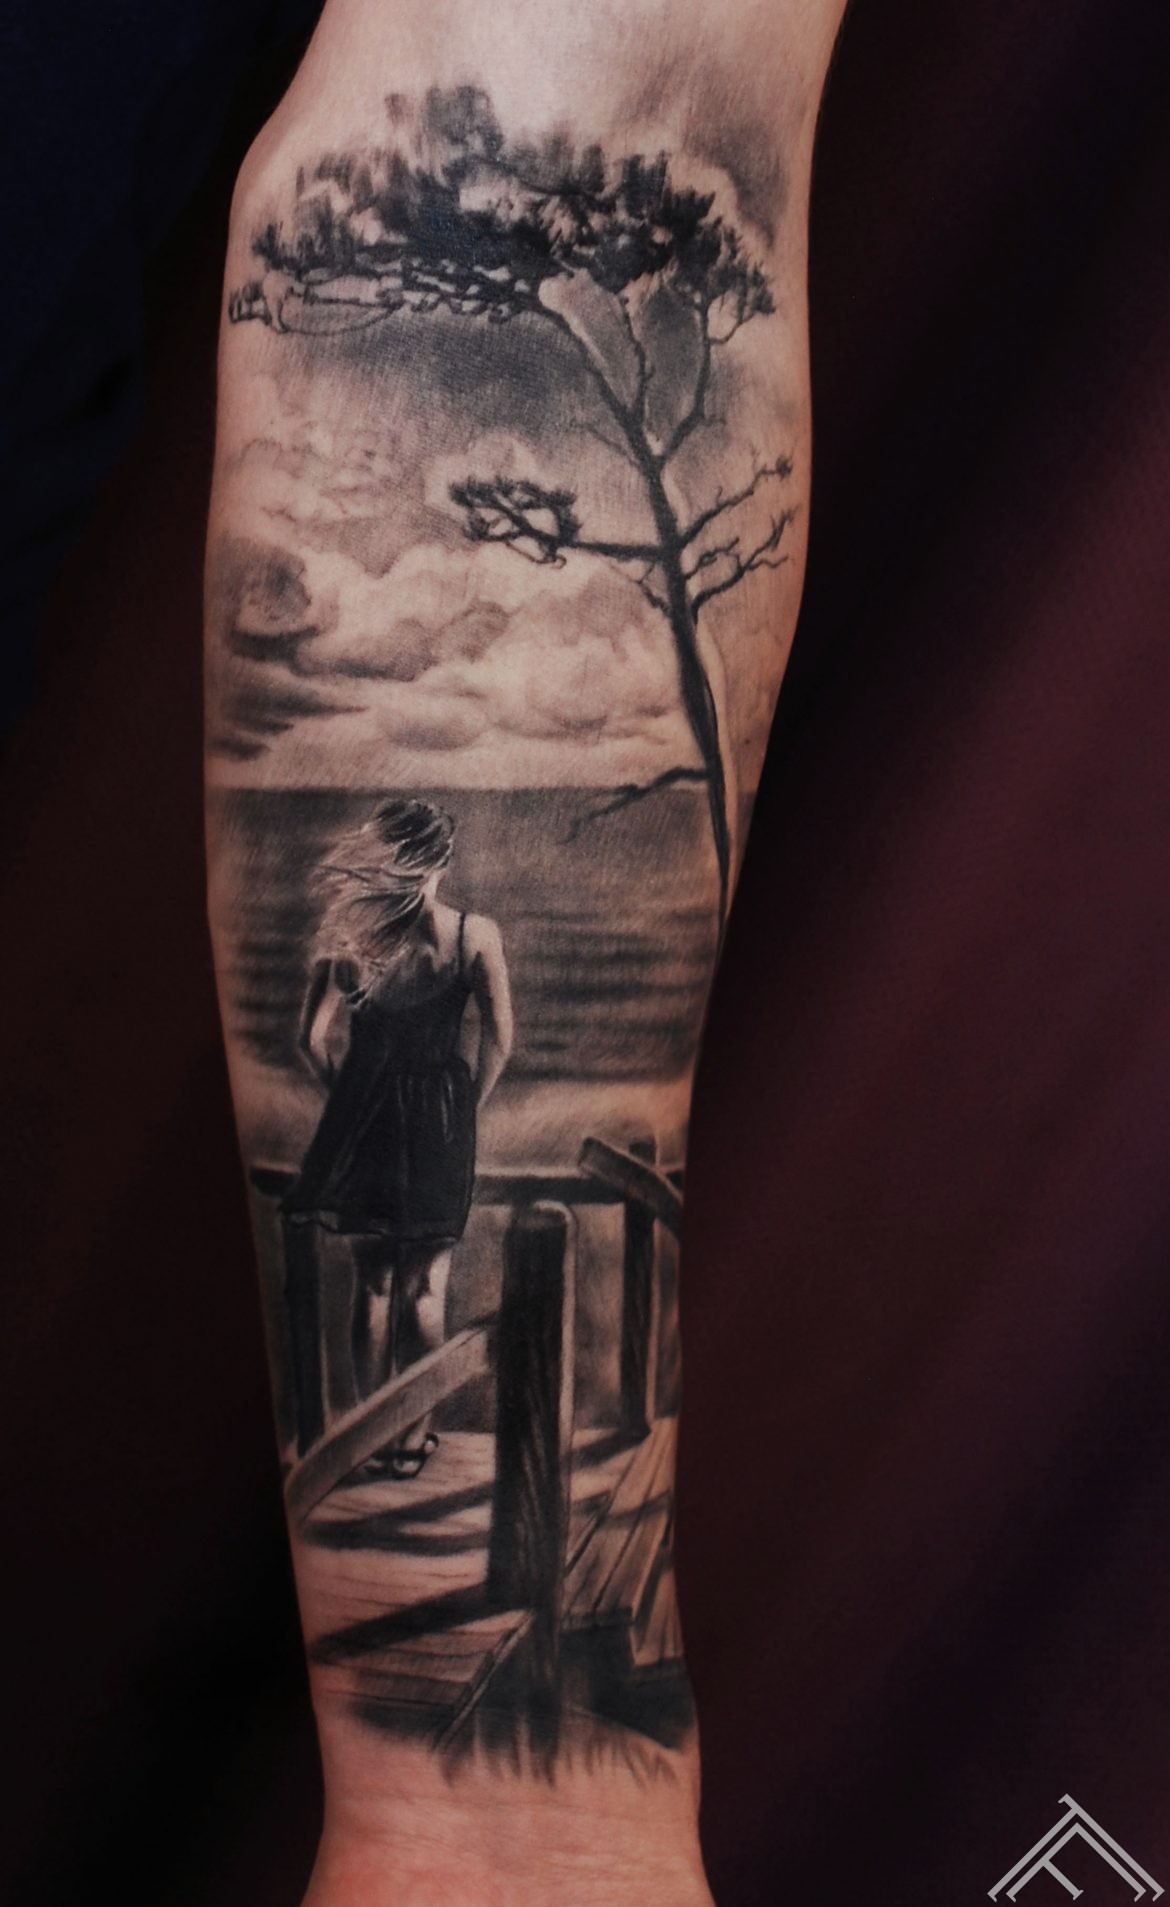 girl-sea-waiting-sailor-pine-tree-marispavlo-tattoofrequency-tetovejums